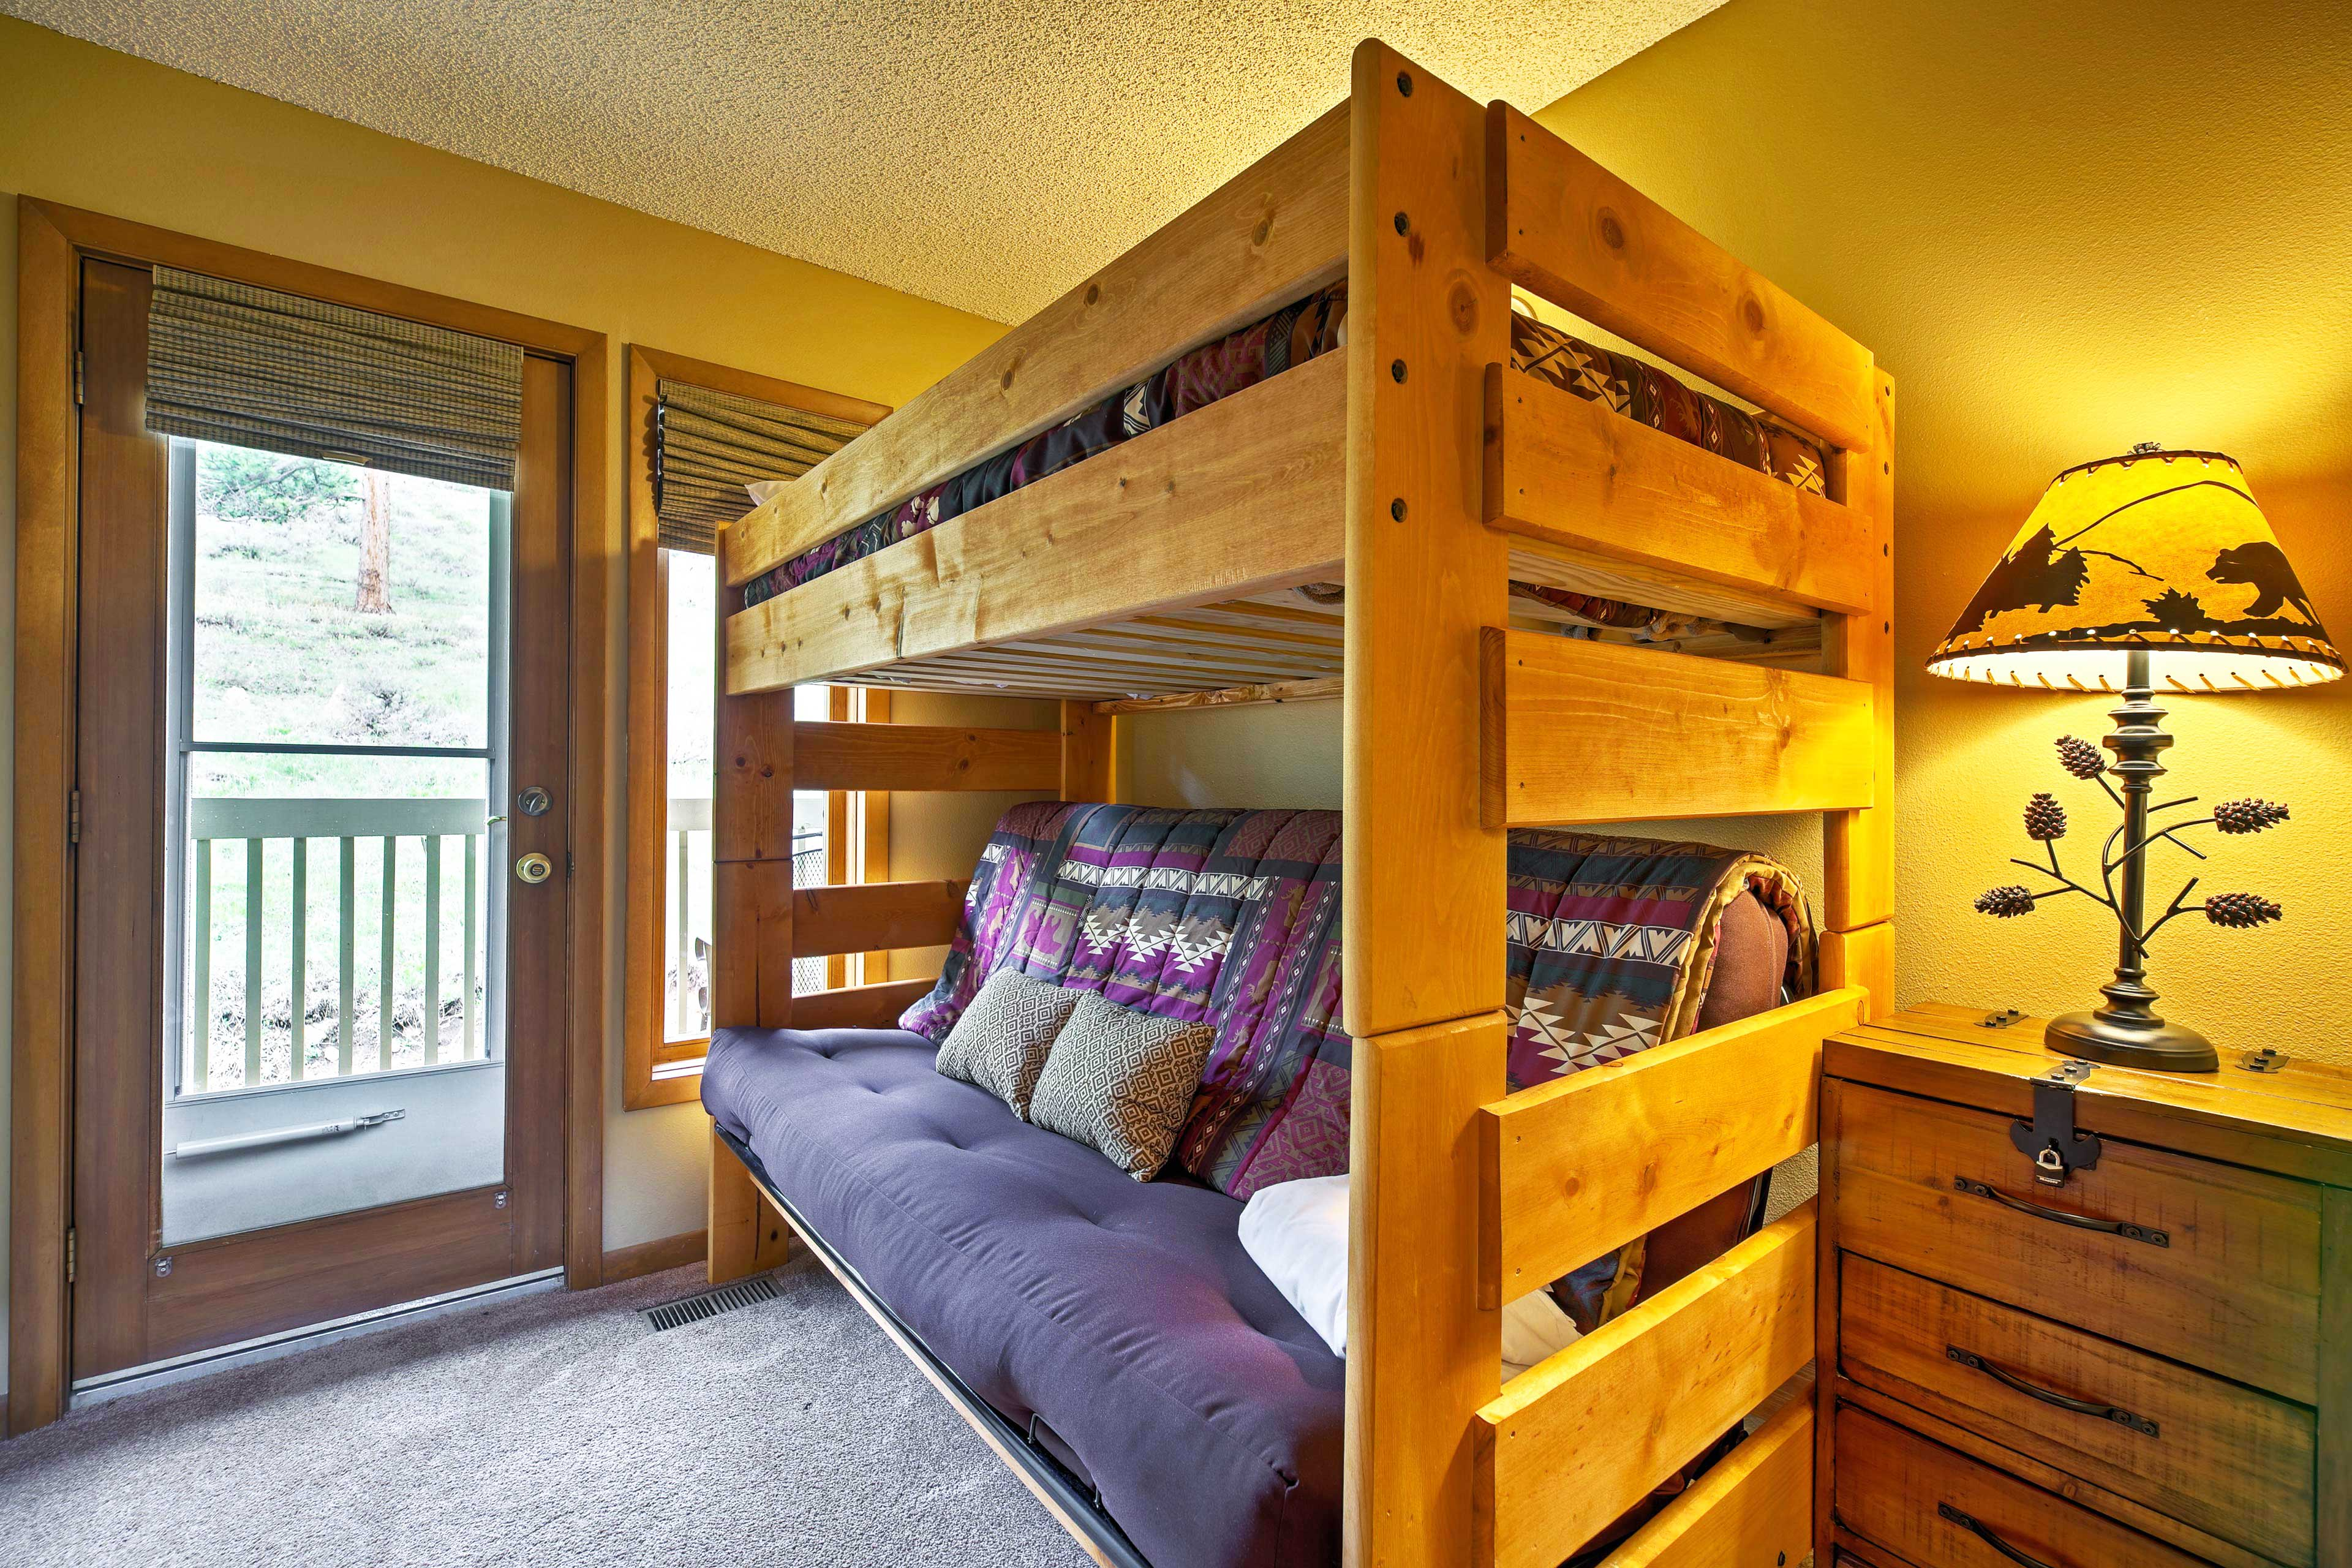 The third bedroom has a twin-over-full futon bunk bed.